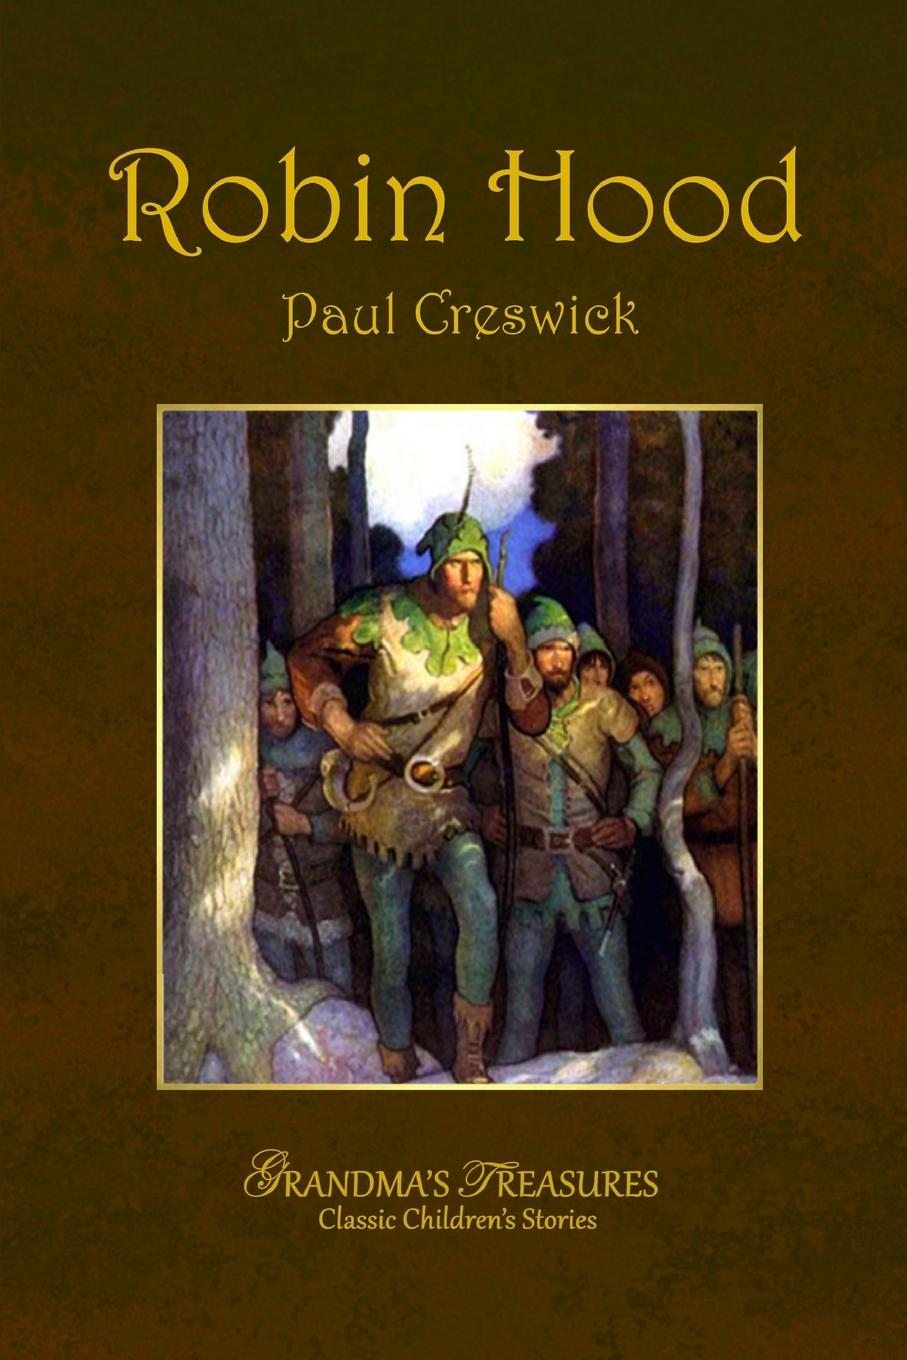 PAUL CRESWICK, GRANDMA'S TREASURES ROBIN HOOD говард пайл the merry adventures of robin hood